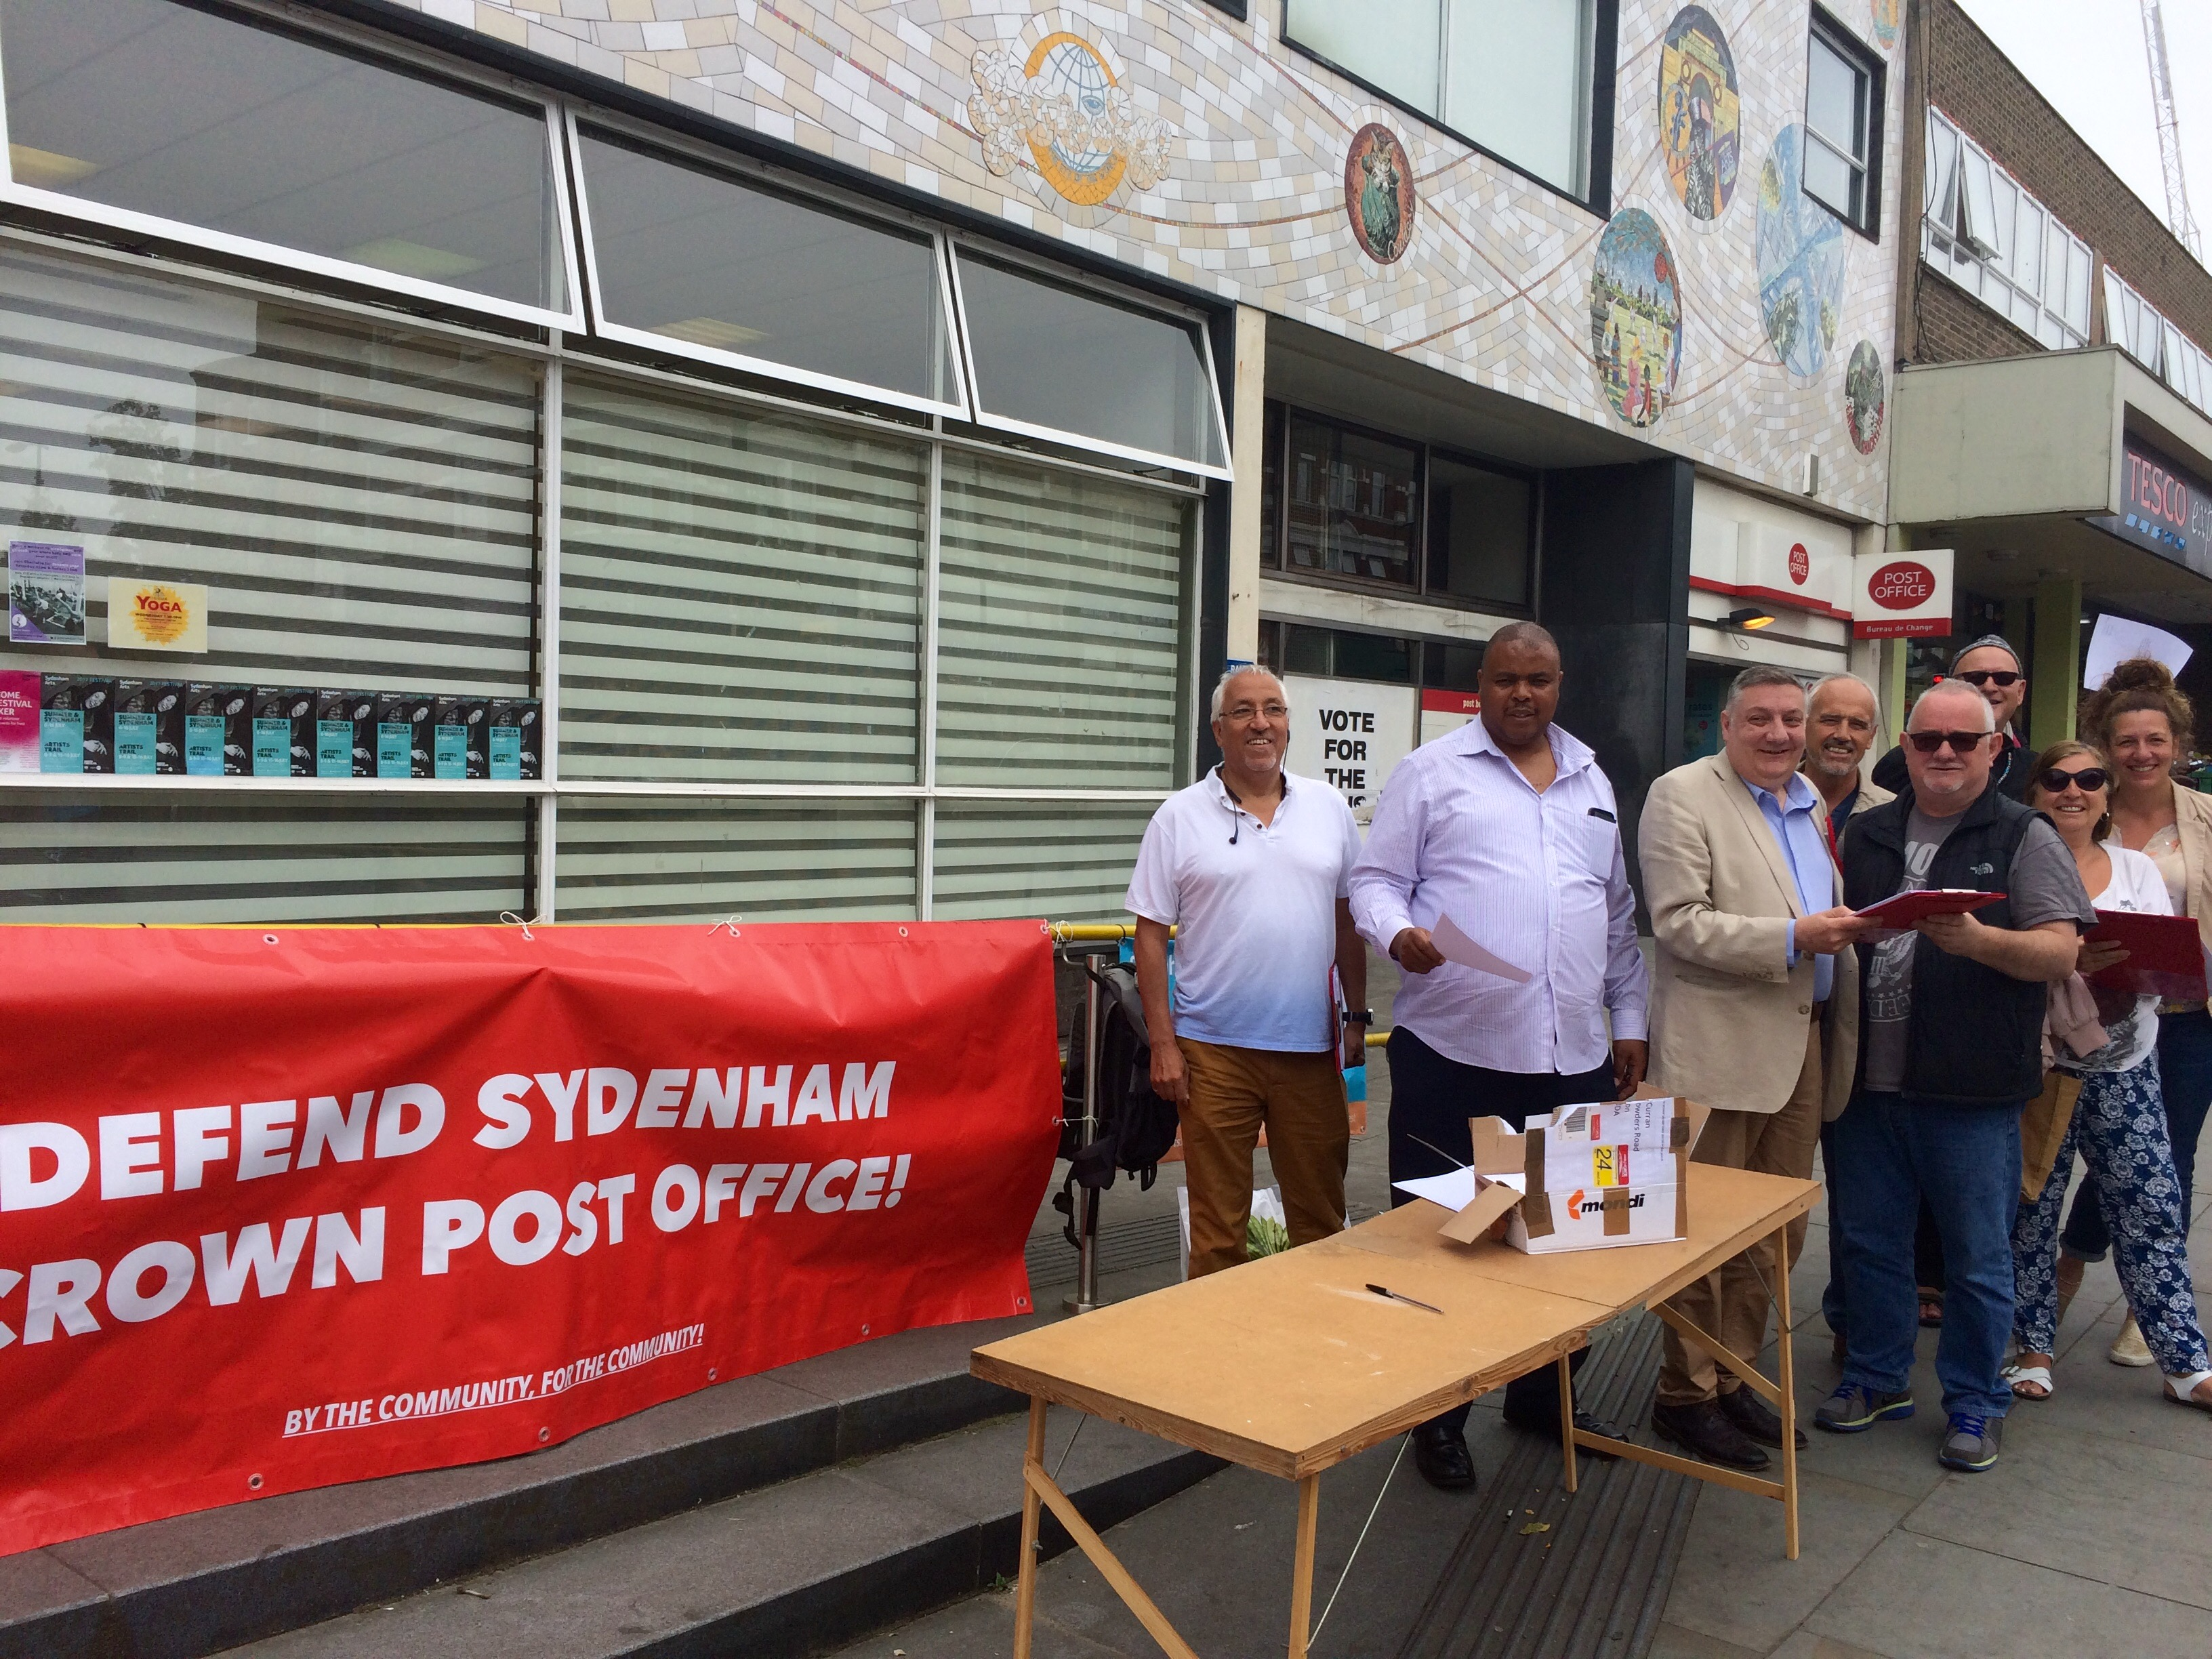 Sydenham Post Office ministeral letter campaign july 2017